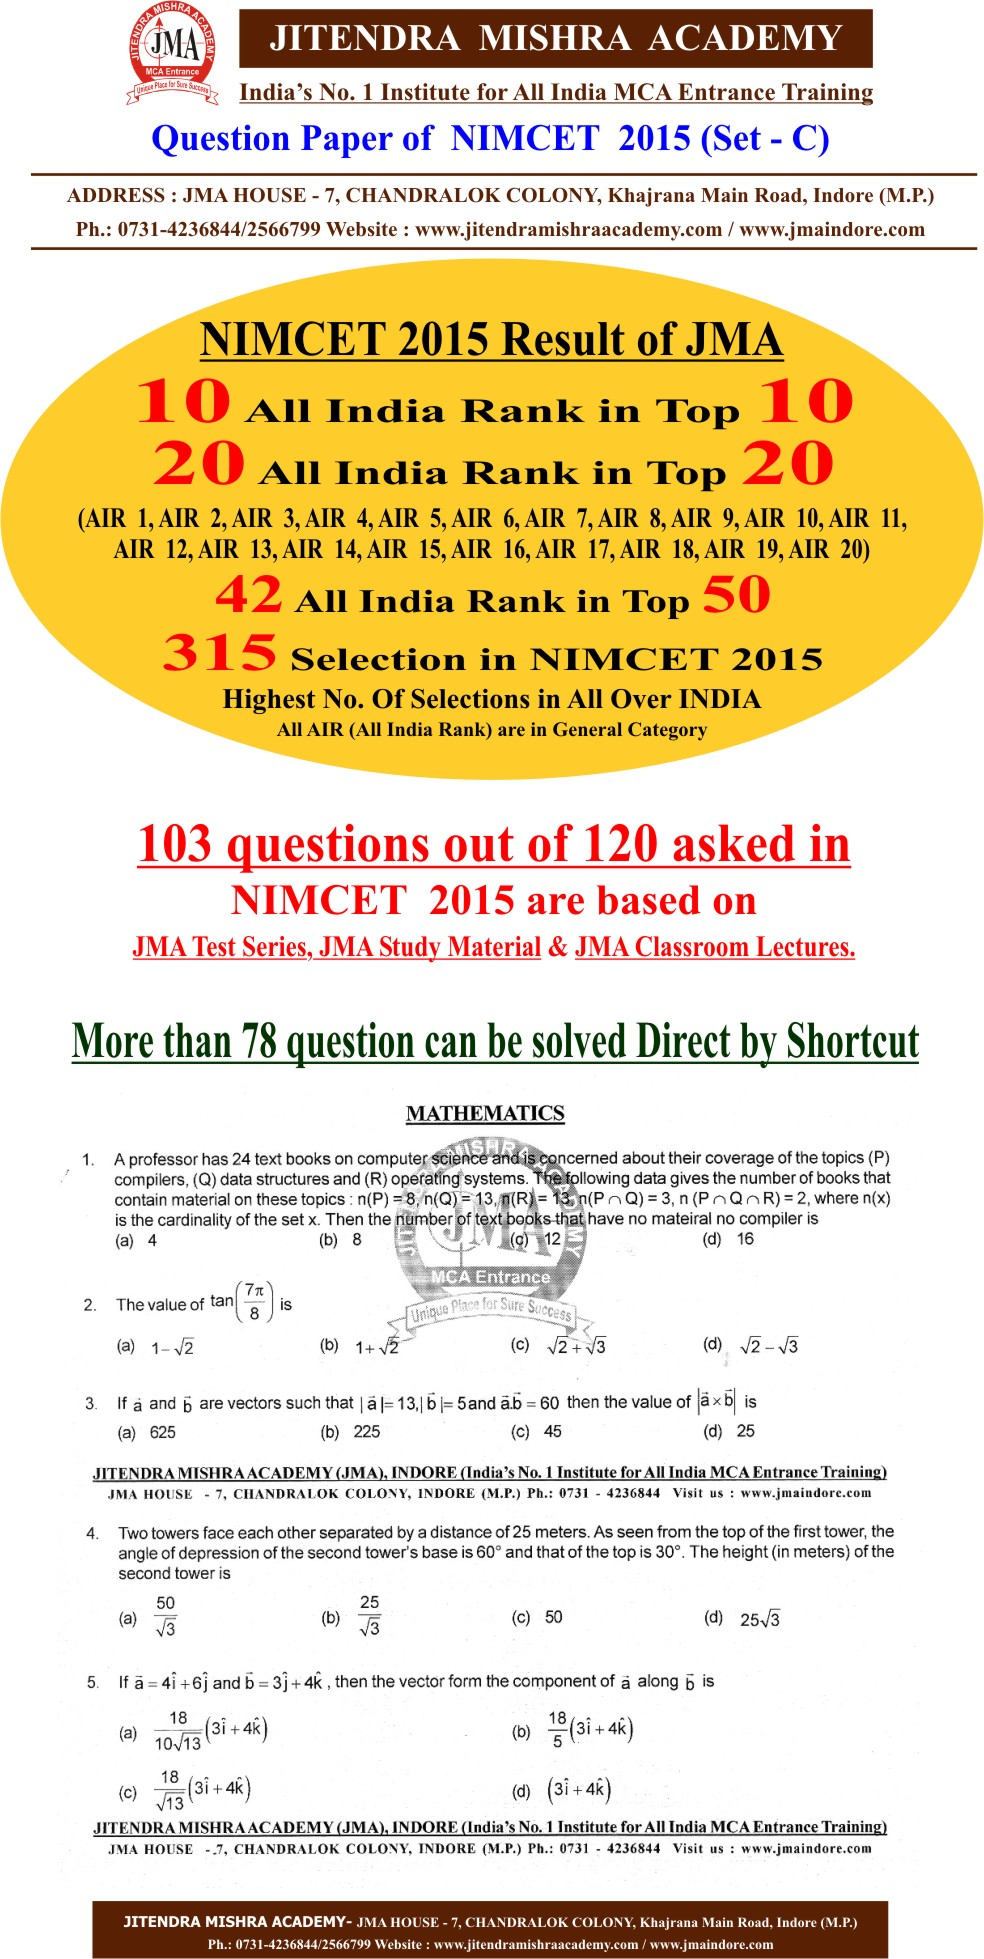 NIMCET 2015 PAPER FIRST PAGE